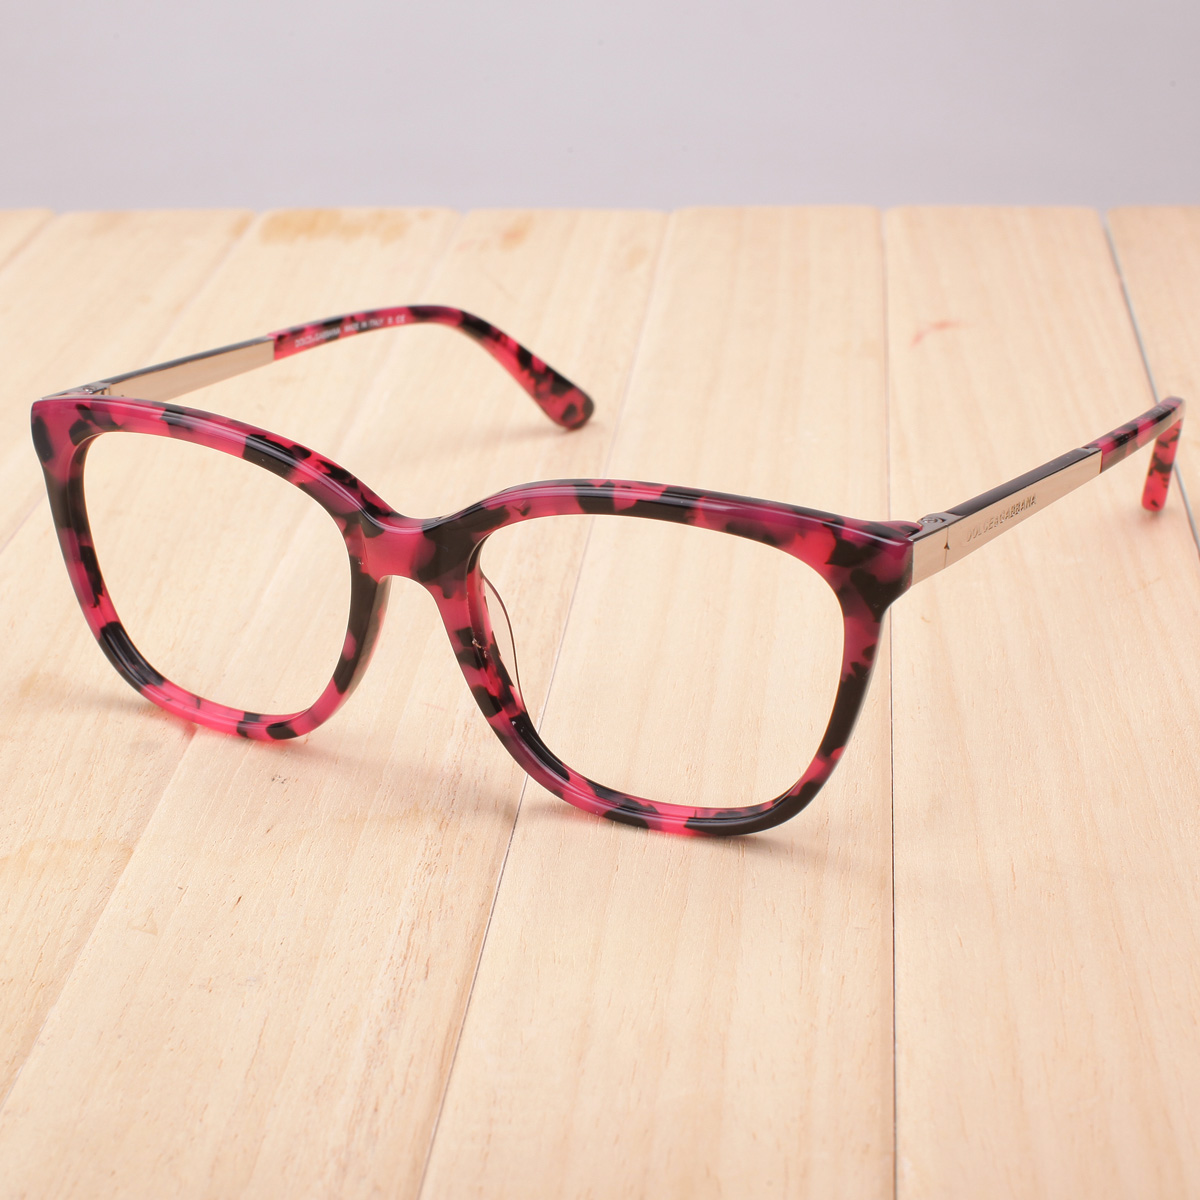 Glasses Frame New : New 2014 Fashion optical eyeglasses spectacle frame men ...